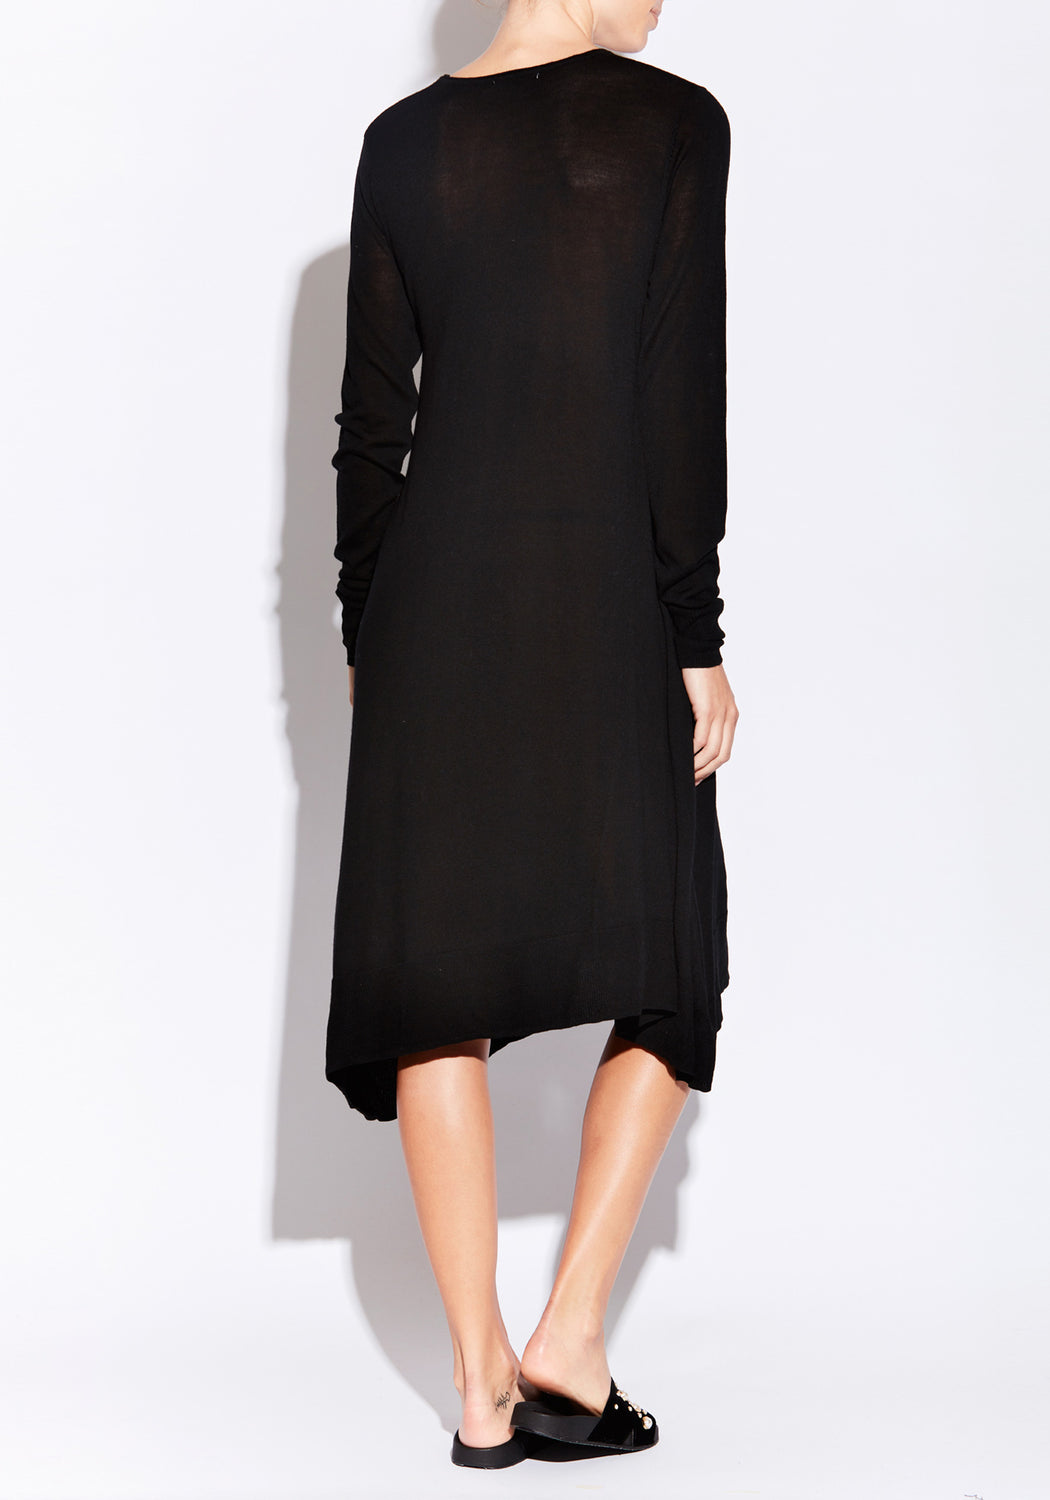 Scope Sweater Dress